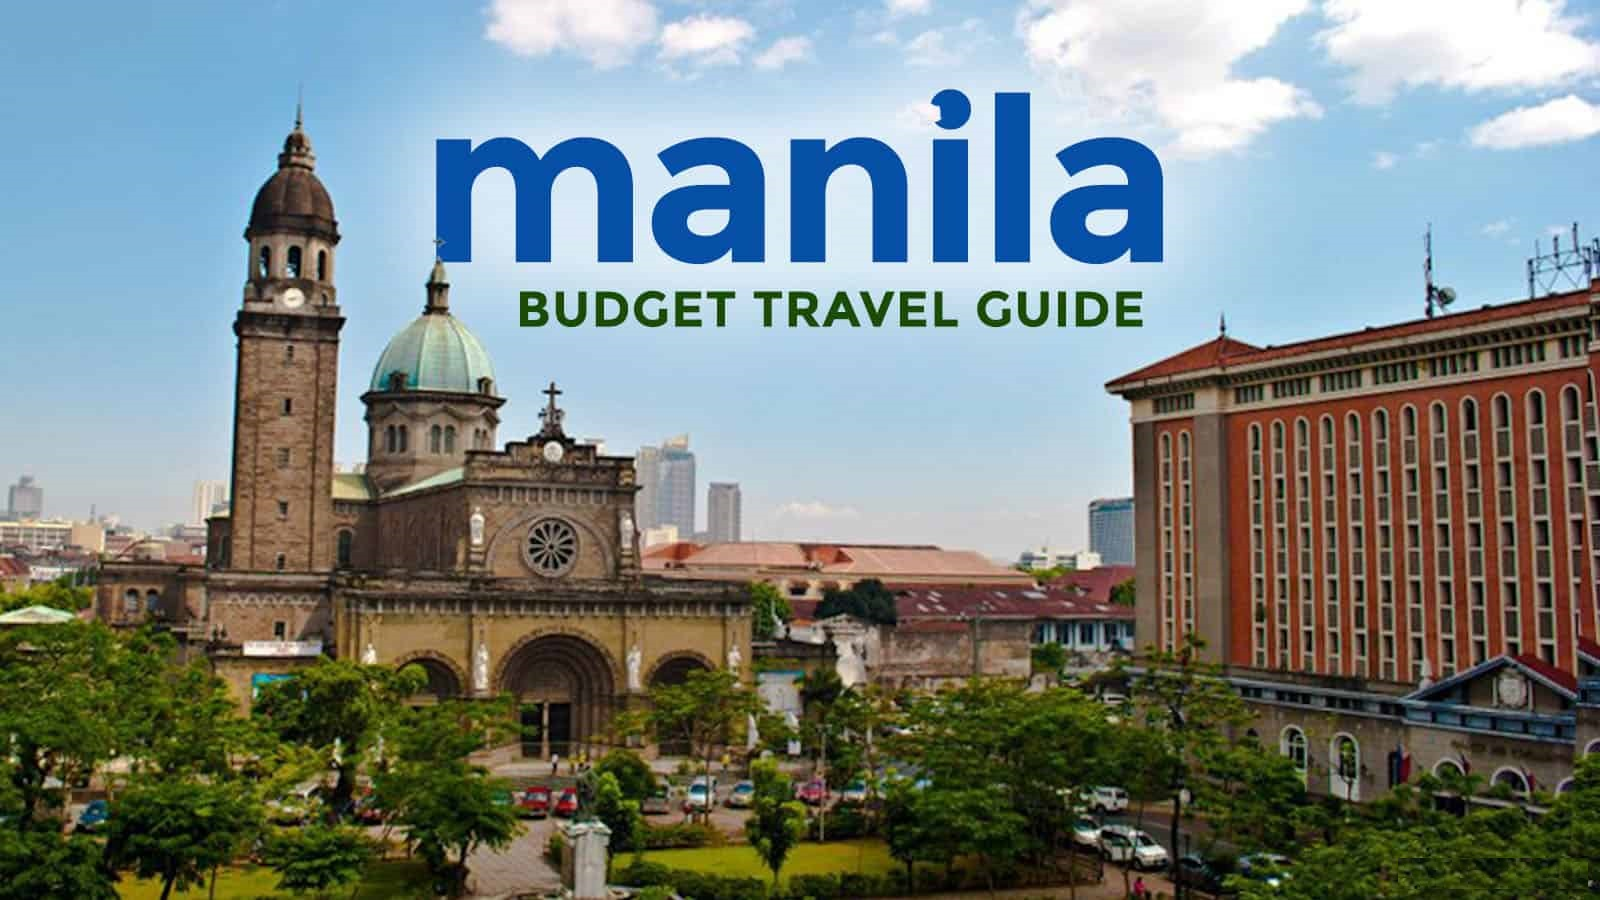 A beautiful trip to Manila: learn what to do, and where to visit